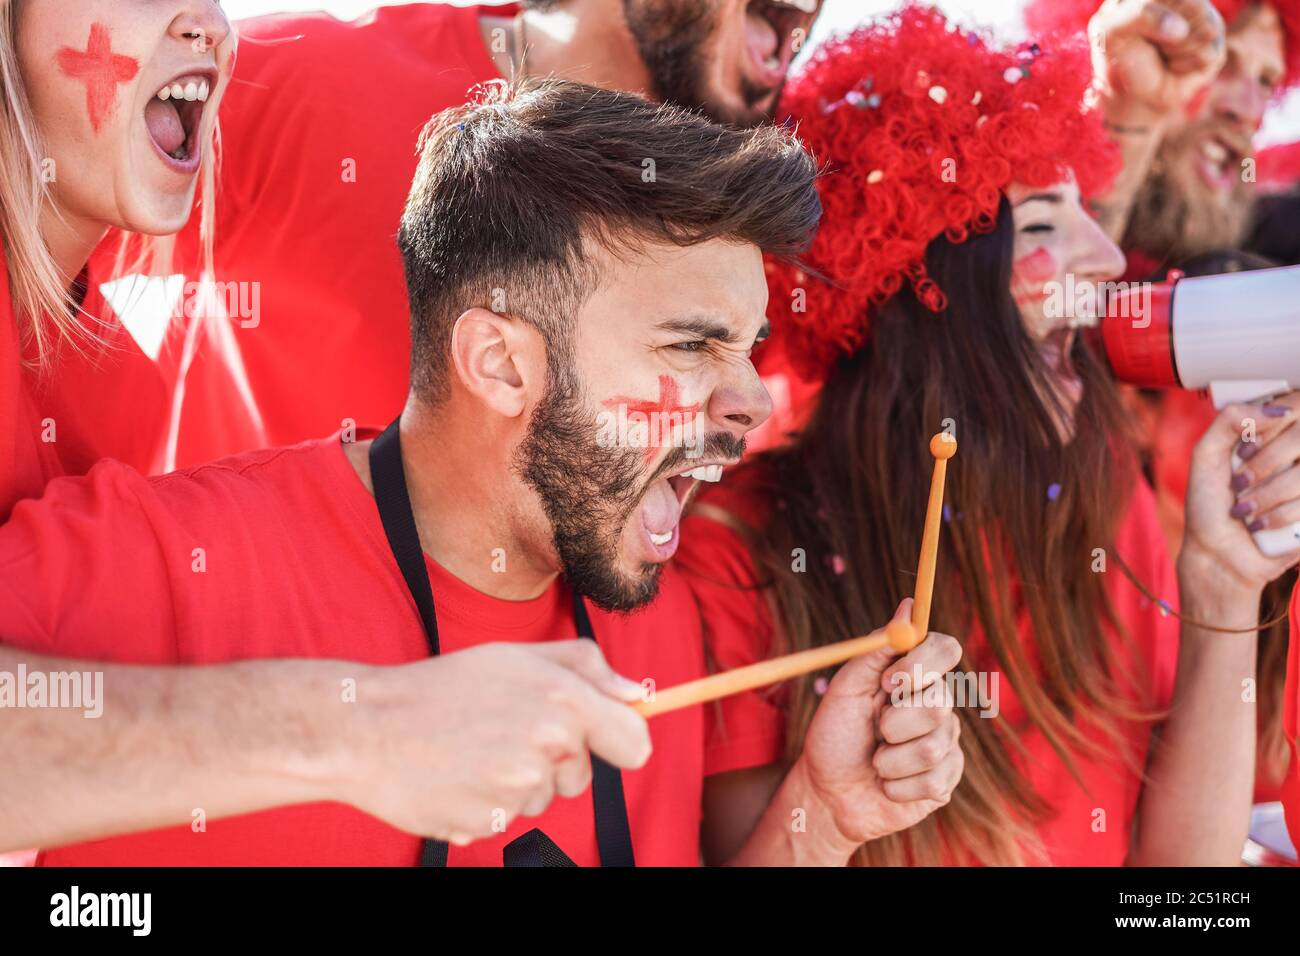 Red sport fans screaming while supporting their team out of the stadium - Football supporters having fun at competion event - Champions and winning co Stock Photo